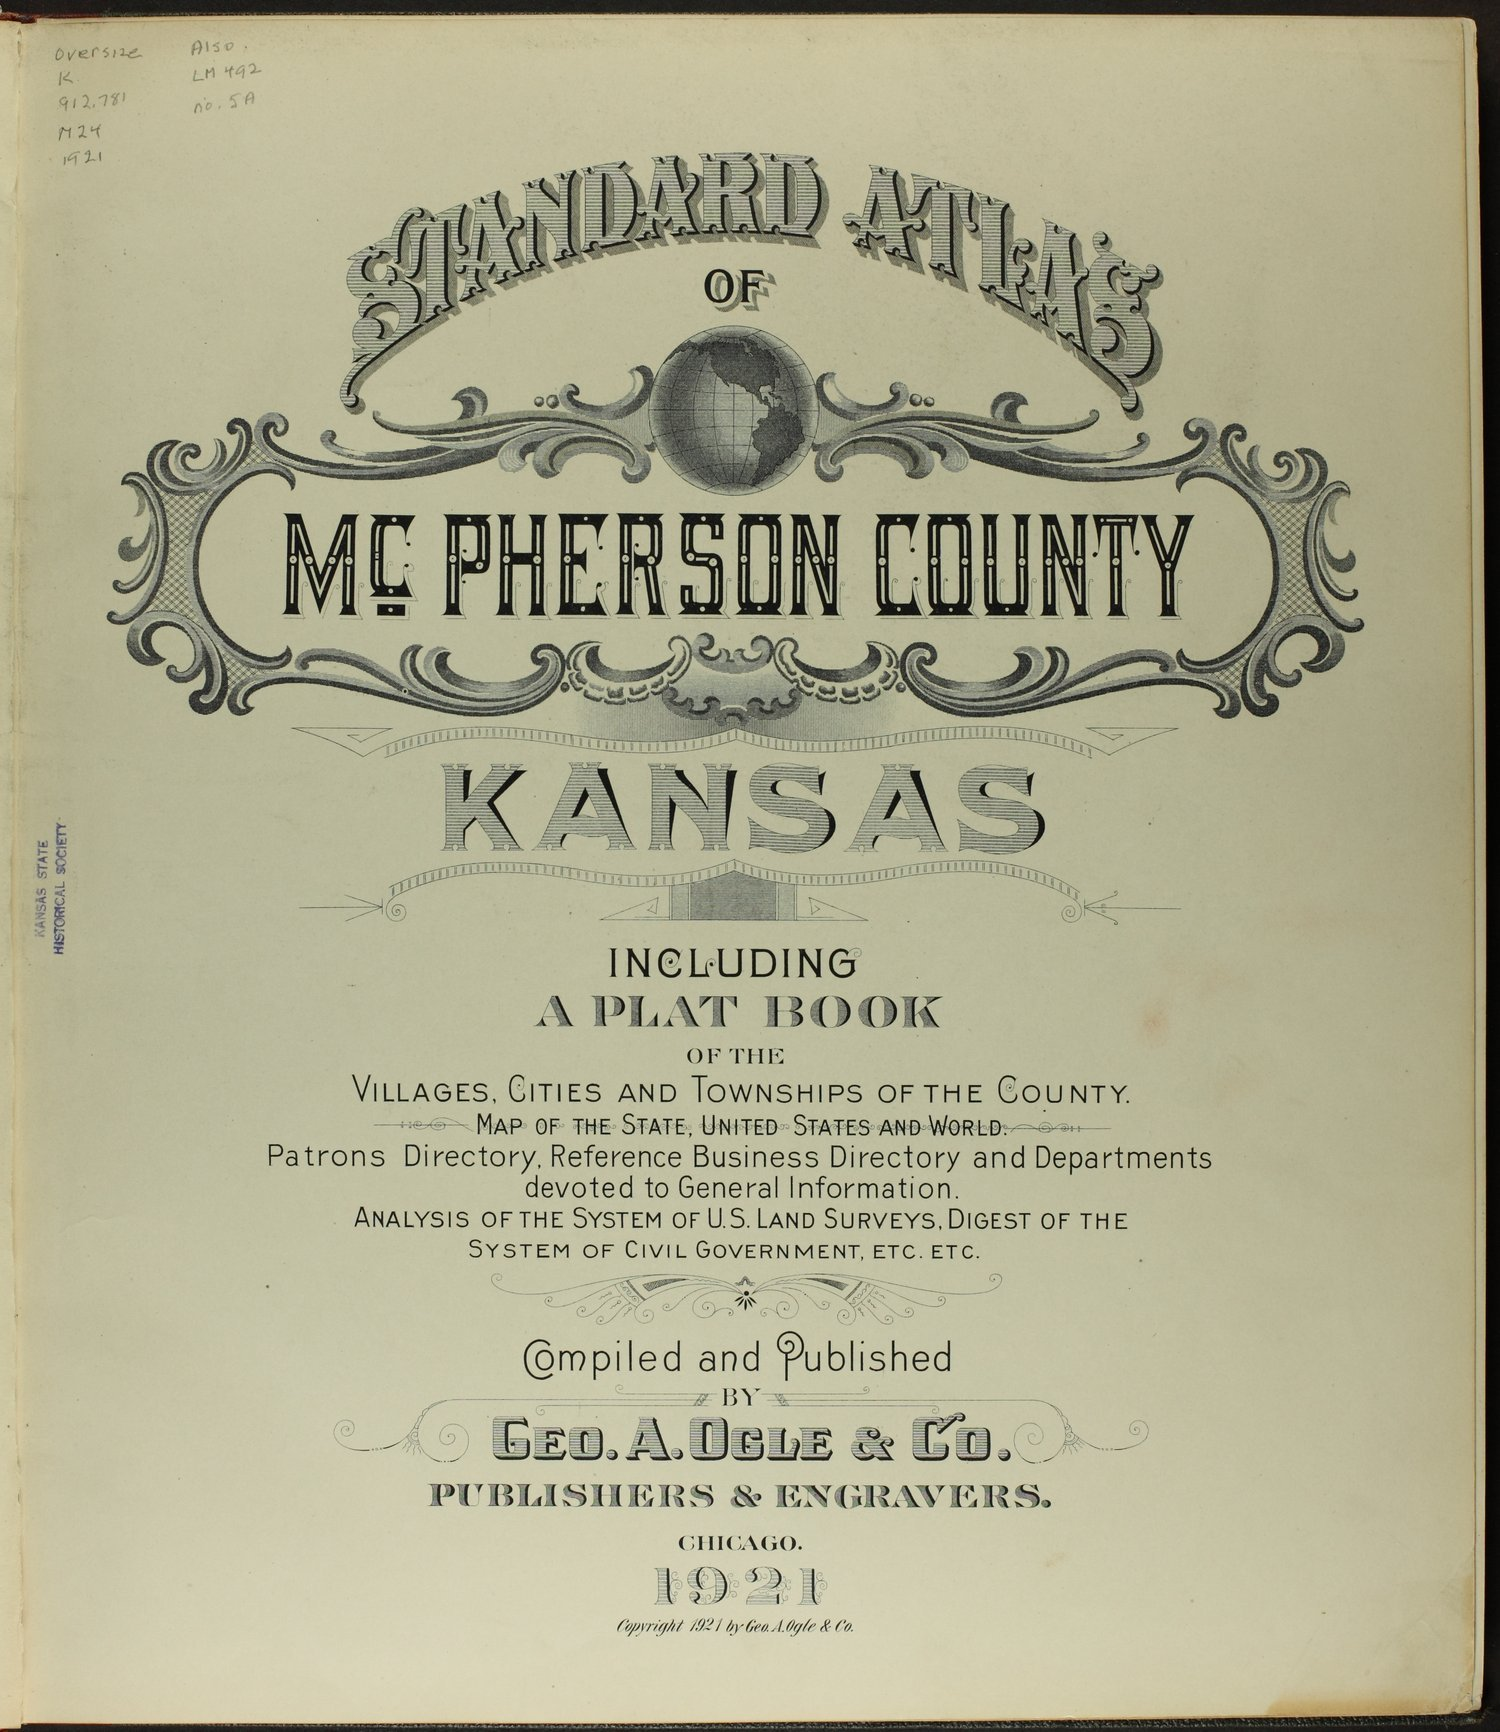 Standard atlas of McPherson County, Kansas - Title Page